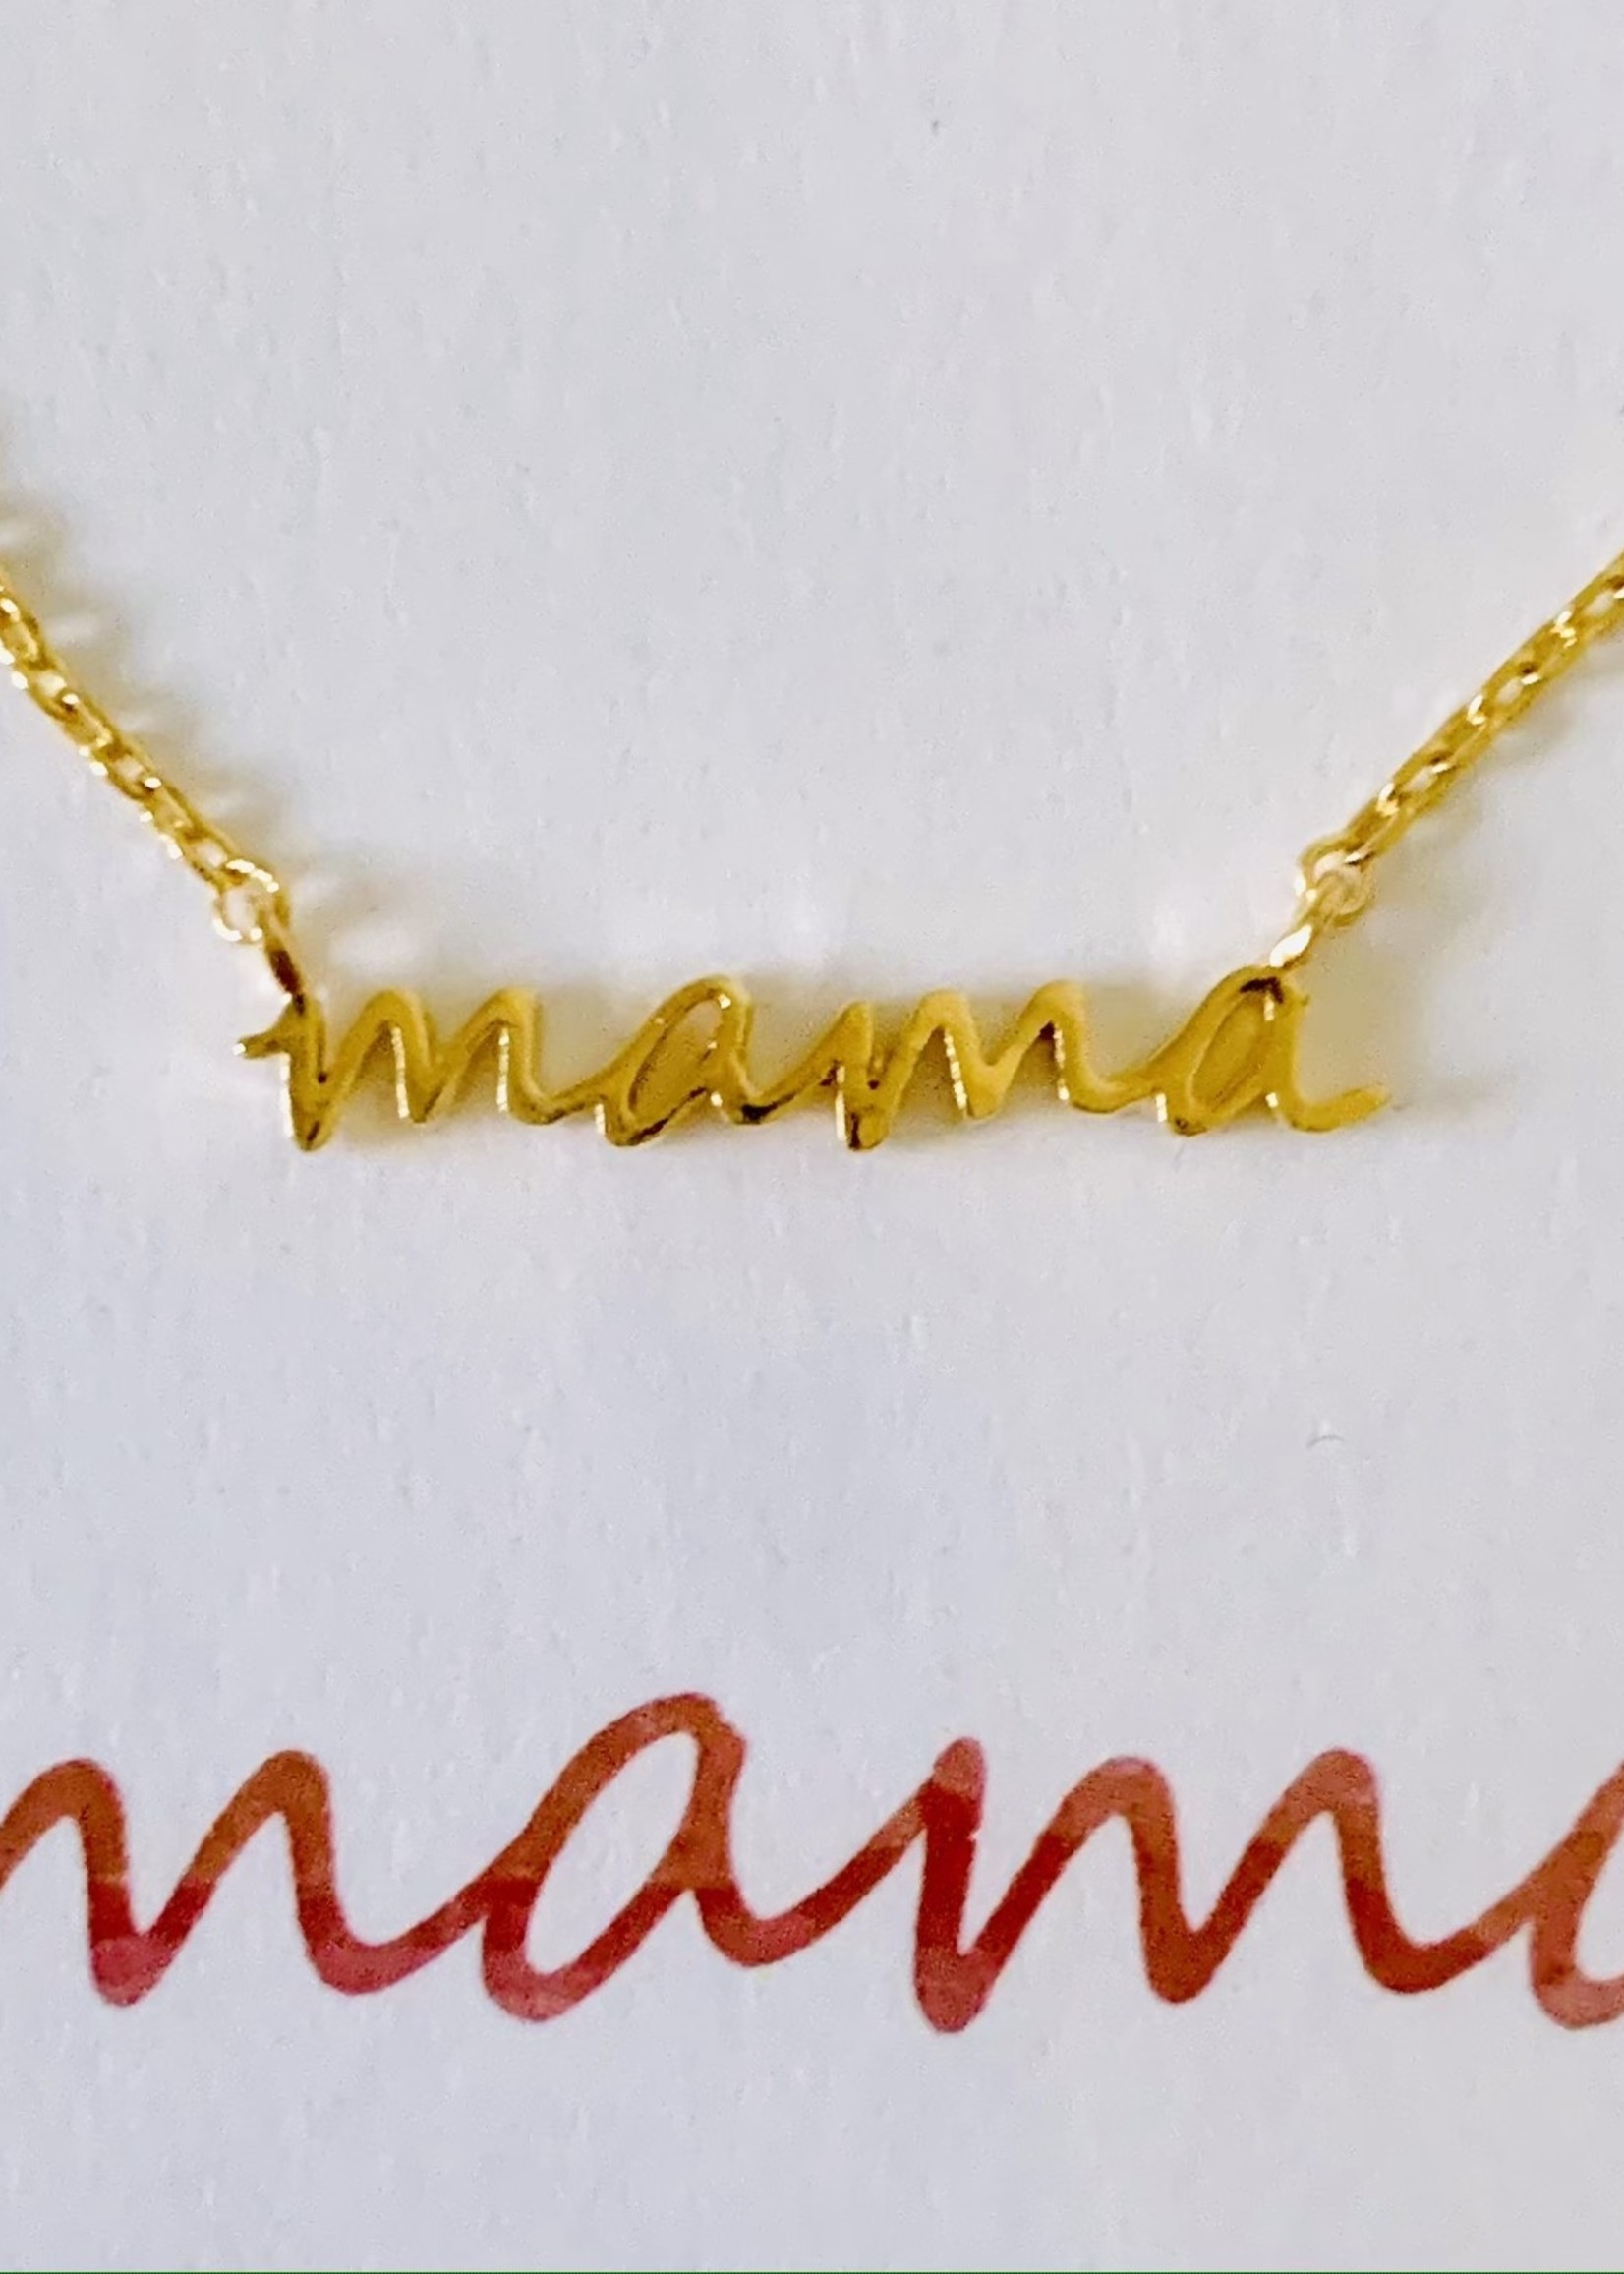 855 necklace